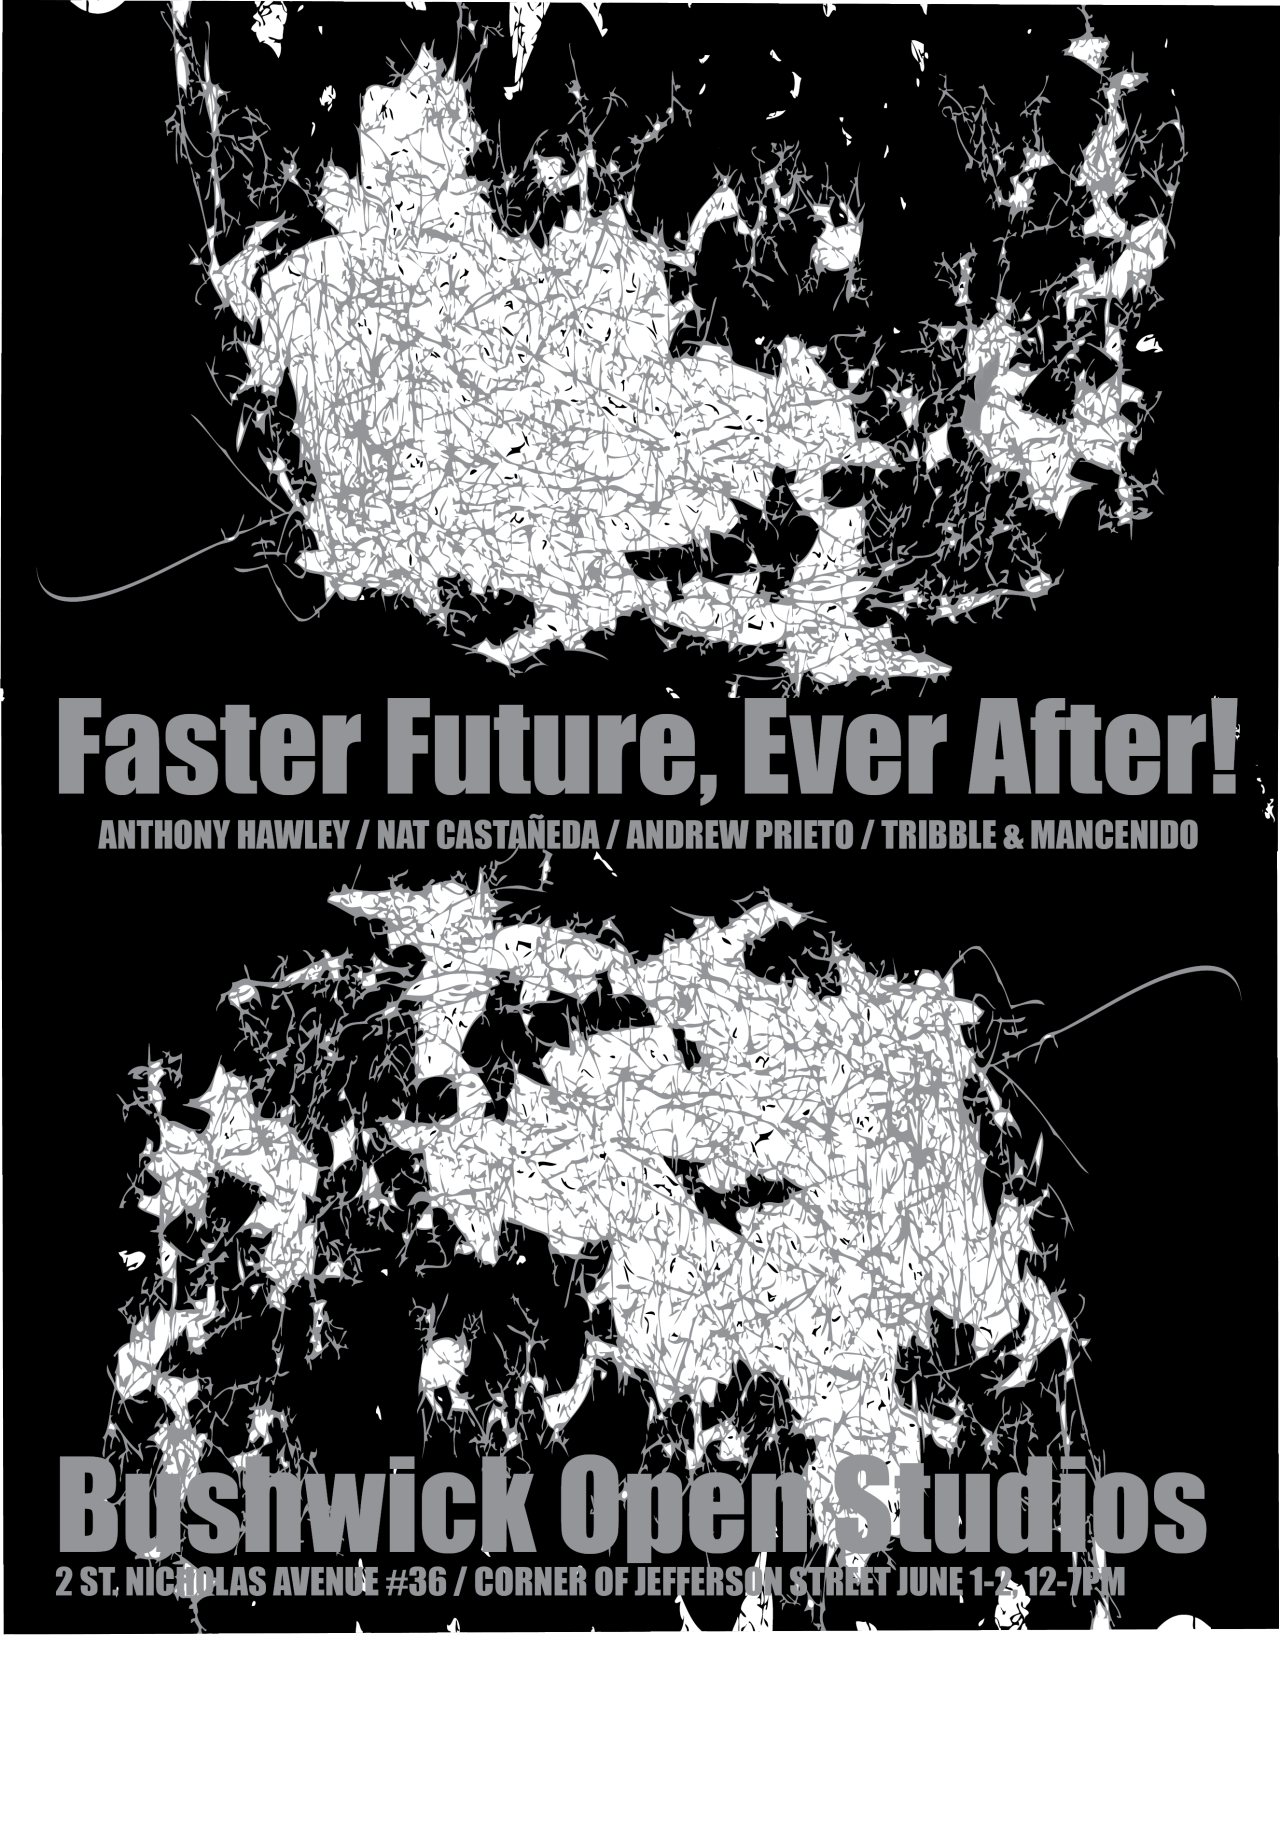 Anthony Hawley, Nat Castaneda, Andrew Prieto, Frank Tribble and Tracy Mancenido-Tribble (All AP '14) present   Faster Future, Ever After!   as part of Bushwick Open Studios this weekend.